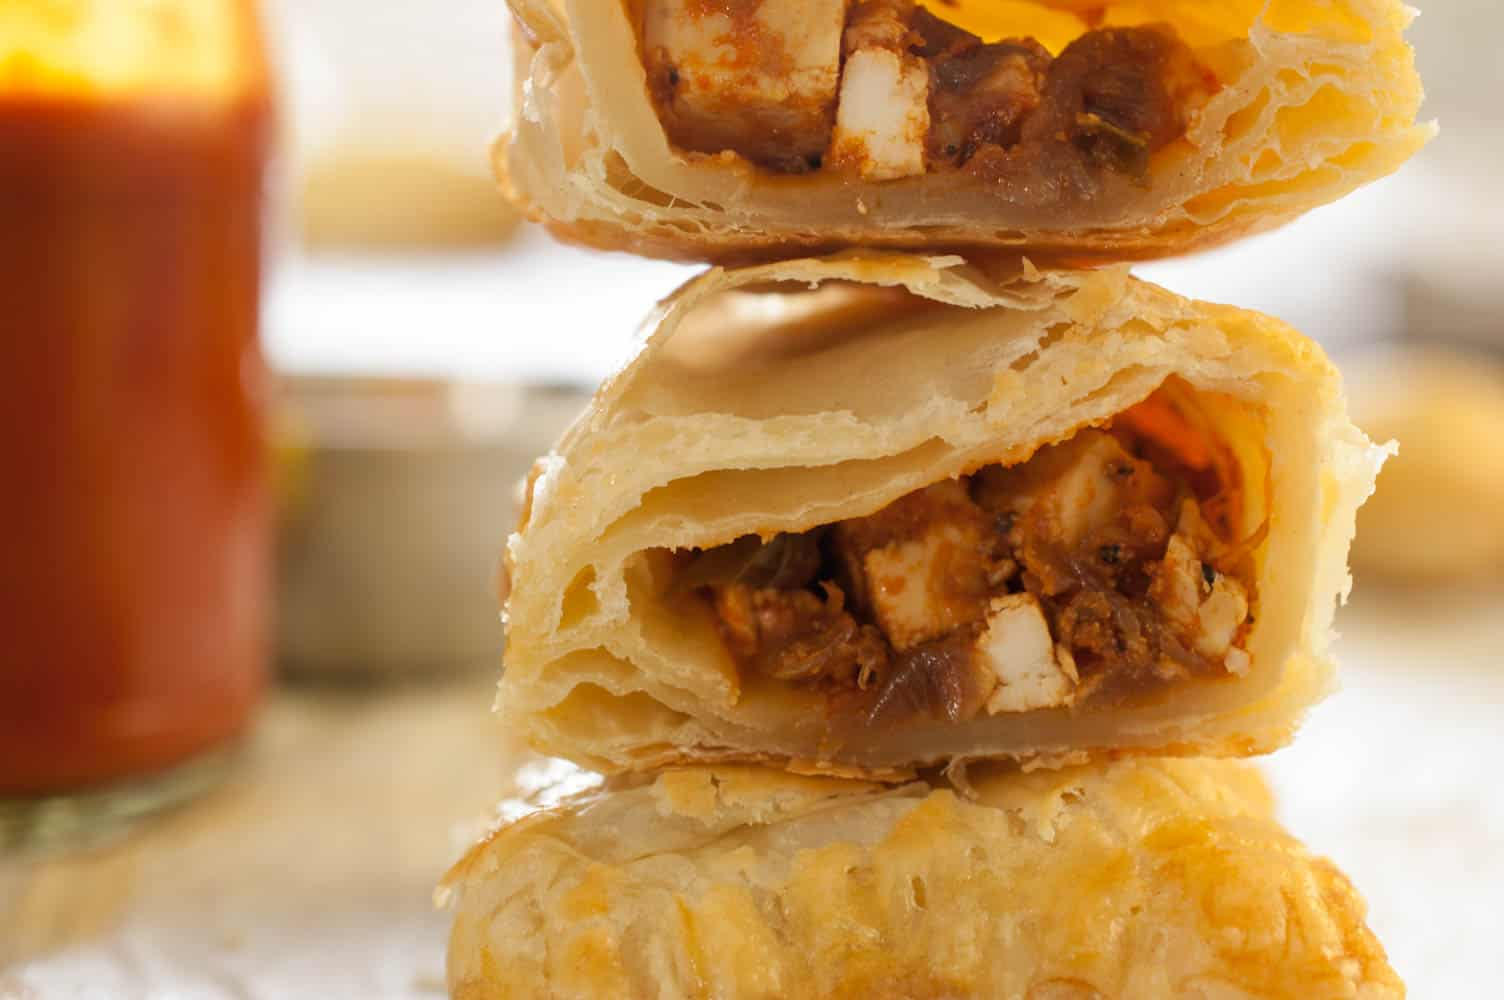 Indian Style Paneer Puff Pastry (Indian Cottage Cheese Puff Pastry)